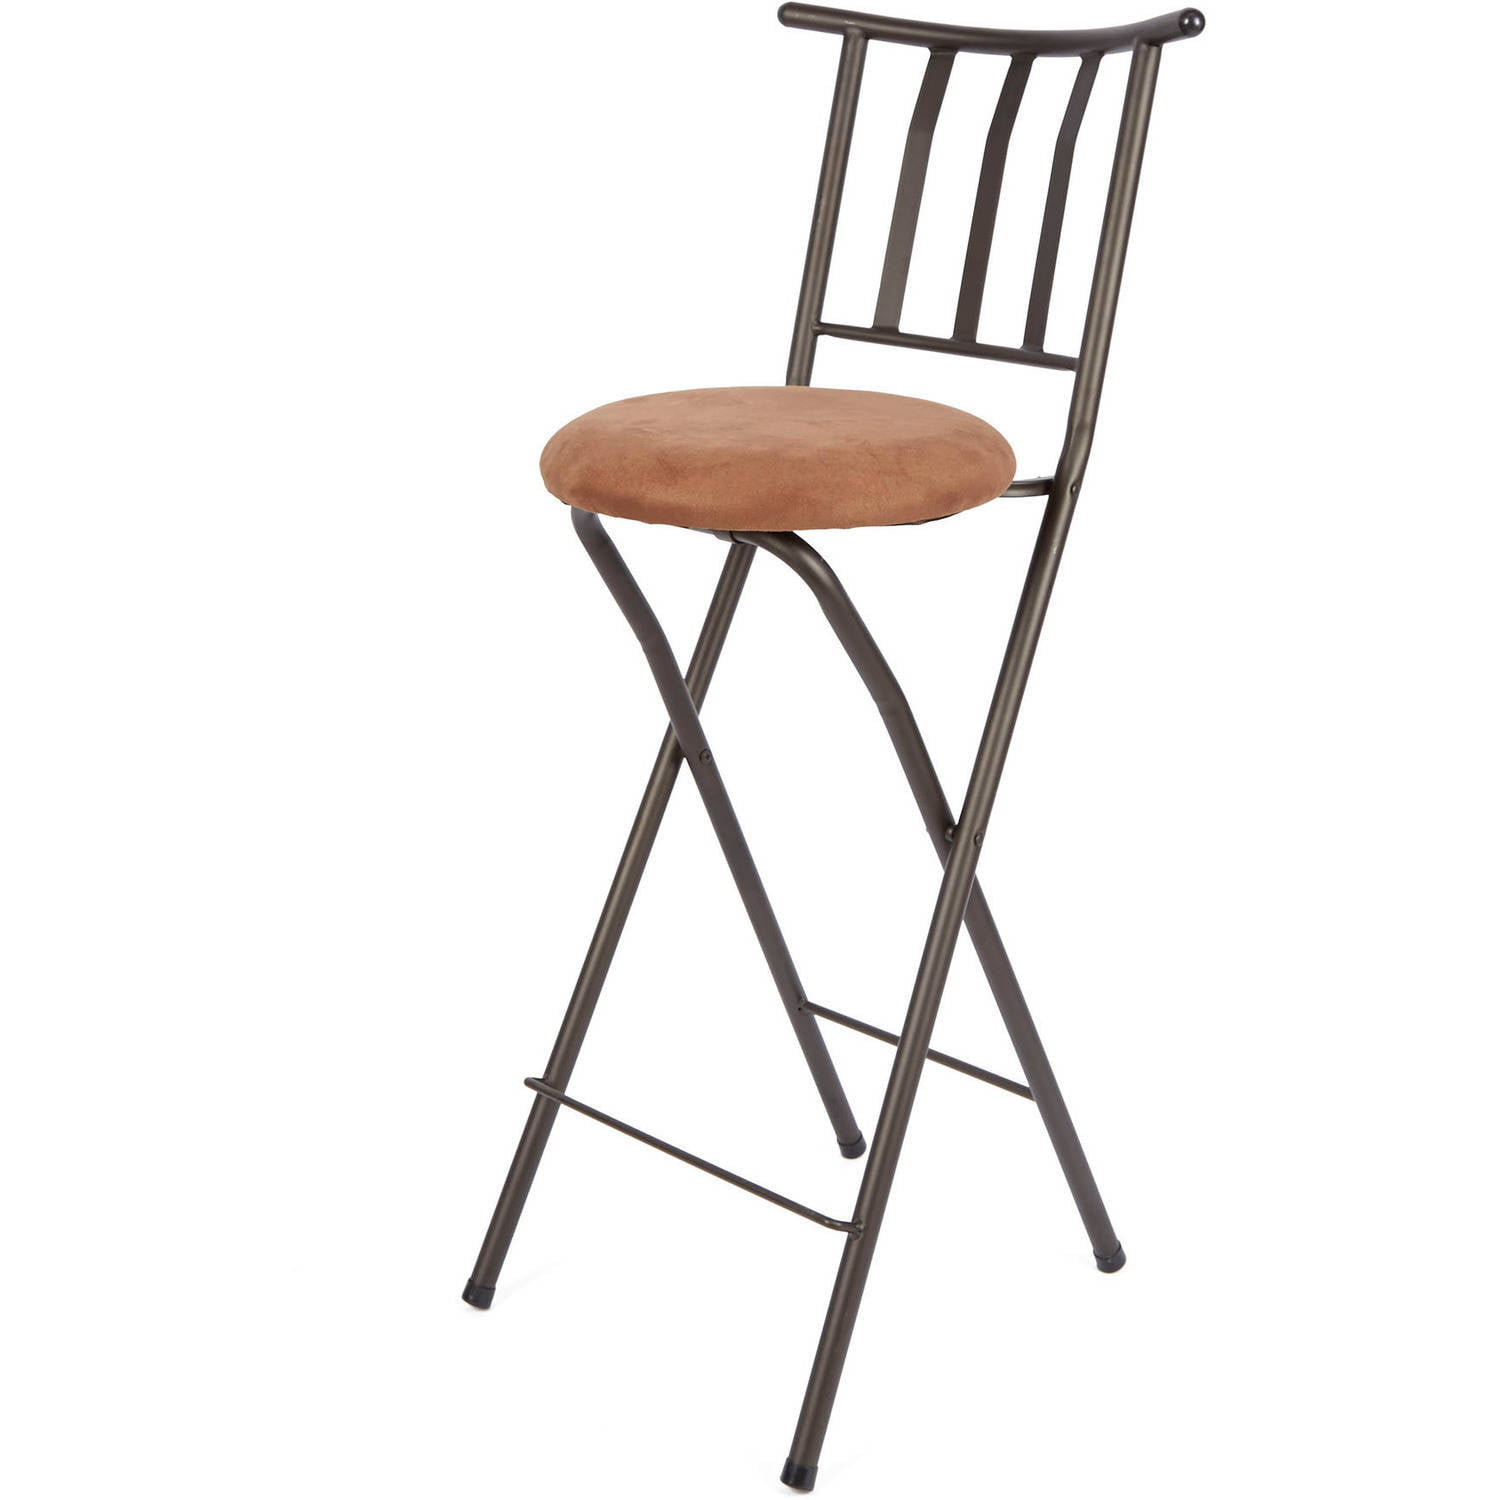 "Mainstays Slat Back Folding 9"" Bronze Bar Stool, Multiple Colors -  Walmart.com"